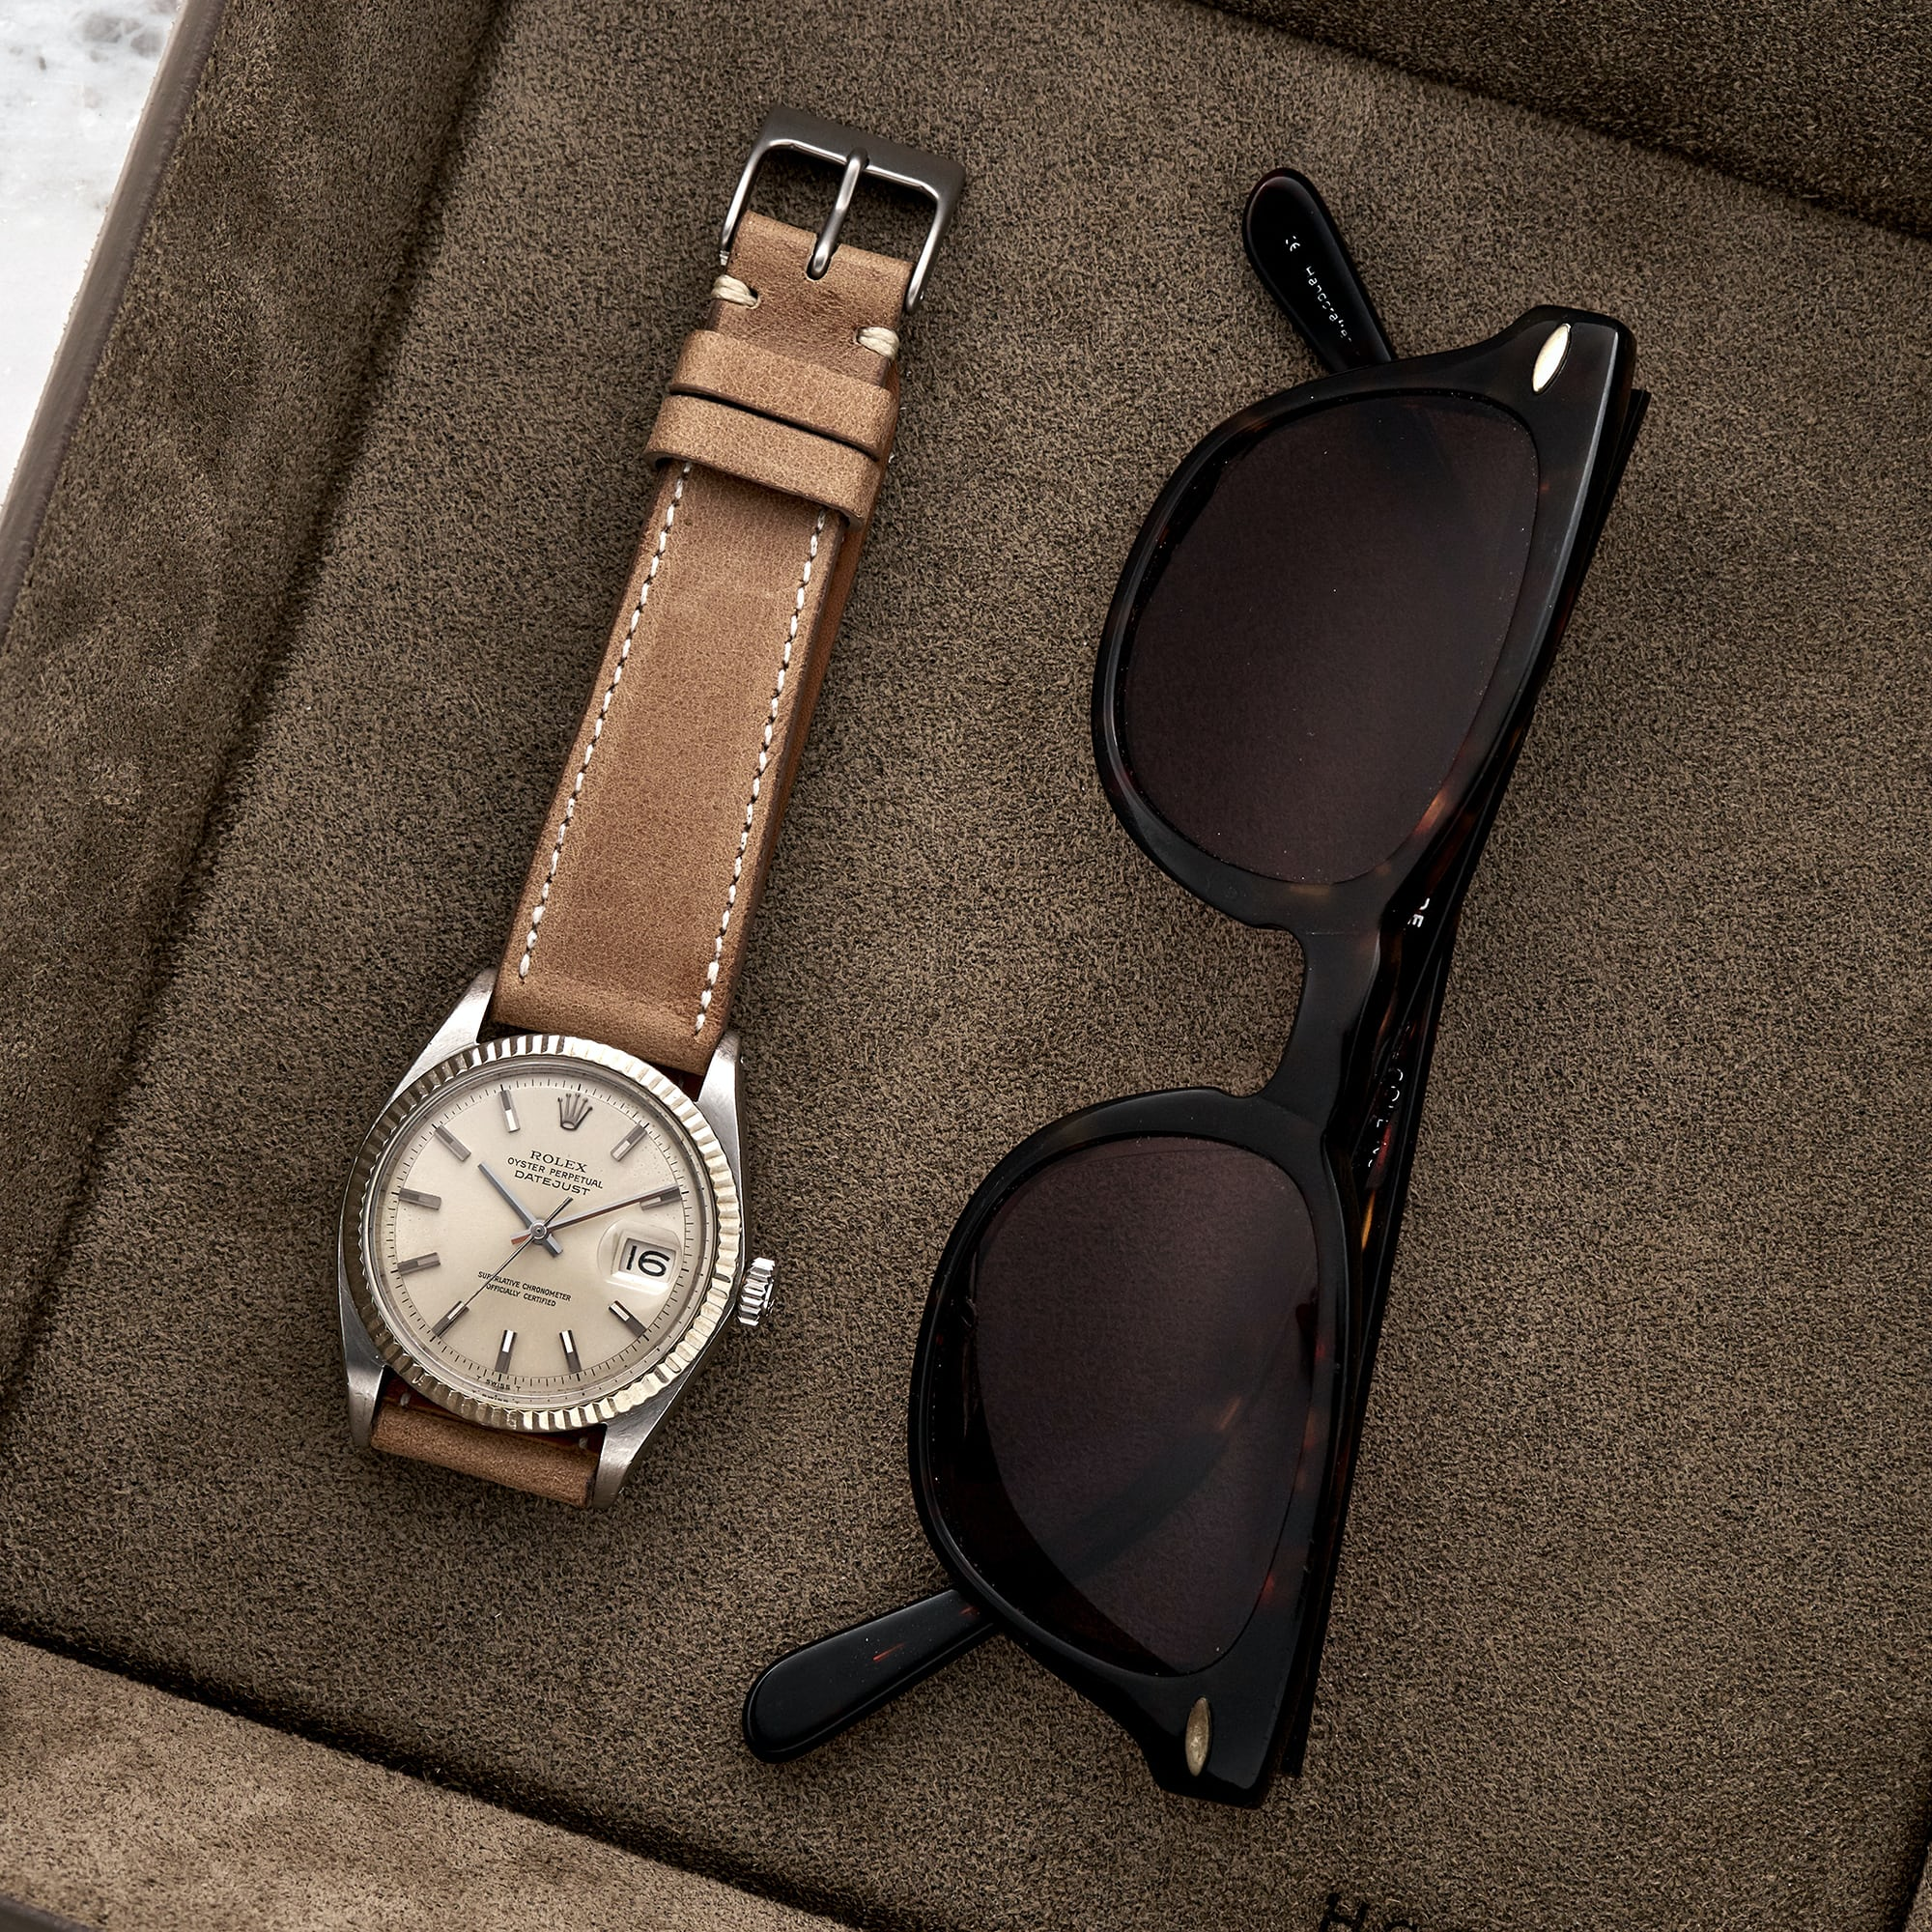 75319e15d3a The Davenport Strap in Tan has been one of my personal favorites to wear.  The color is a nice neutral tan that can be styled with any watch